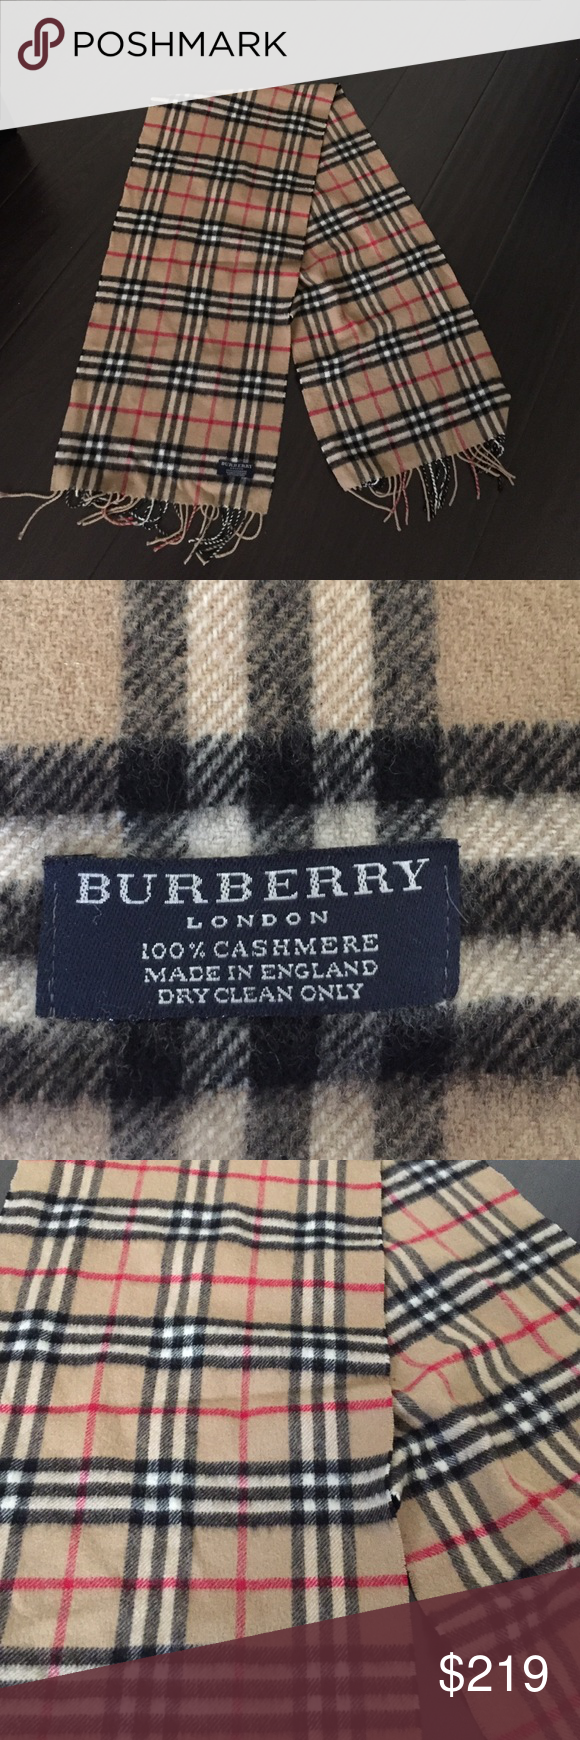 5b31025fa47c ... discount 100 authentic burberry cashmere scarf used but in good  condition. 100 authentic burberry 03b06